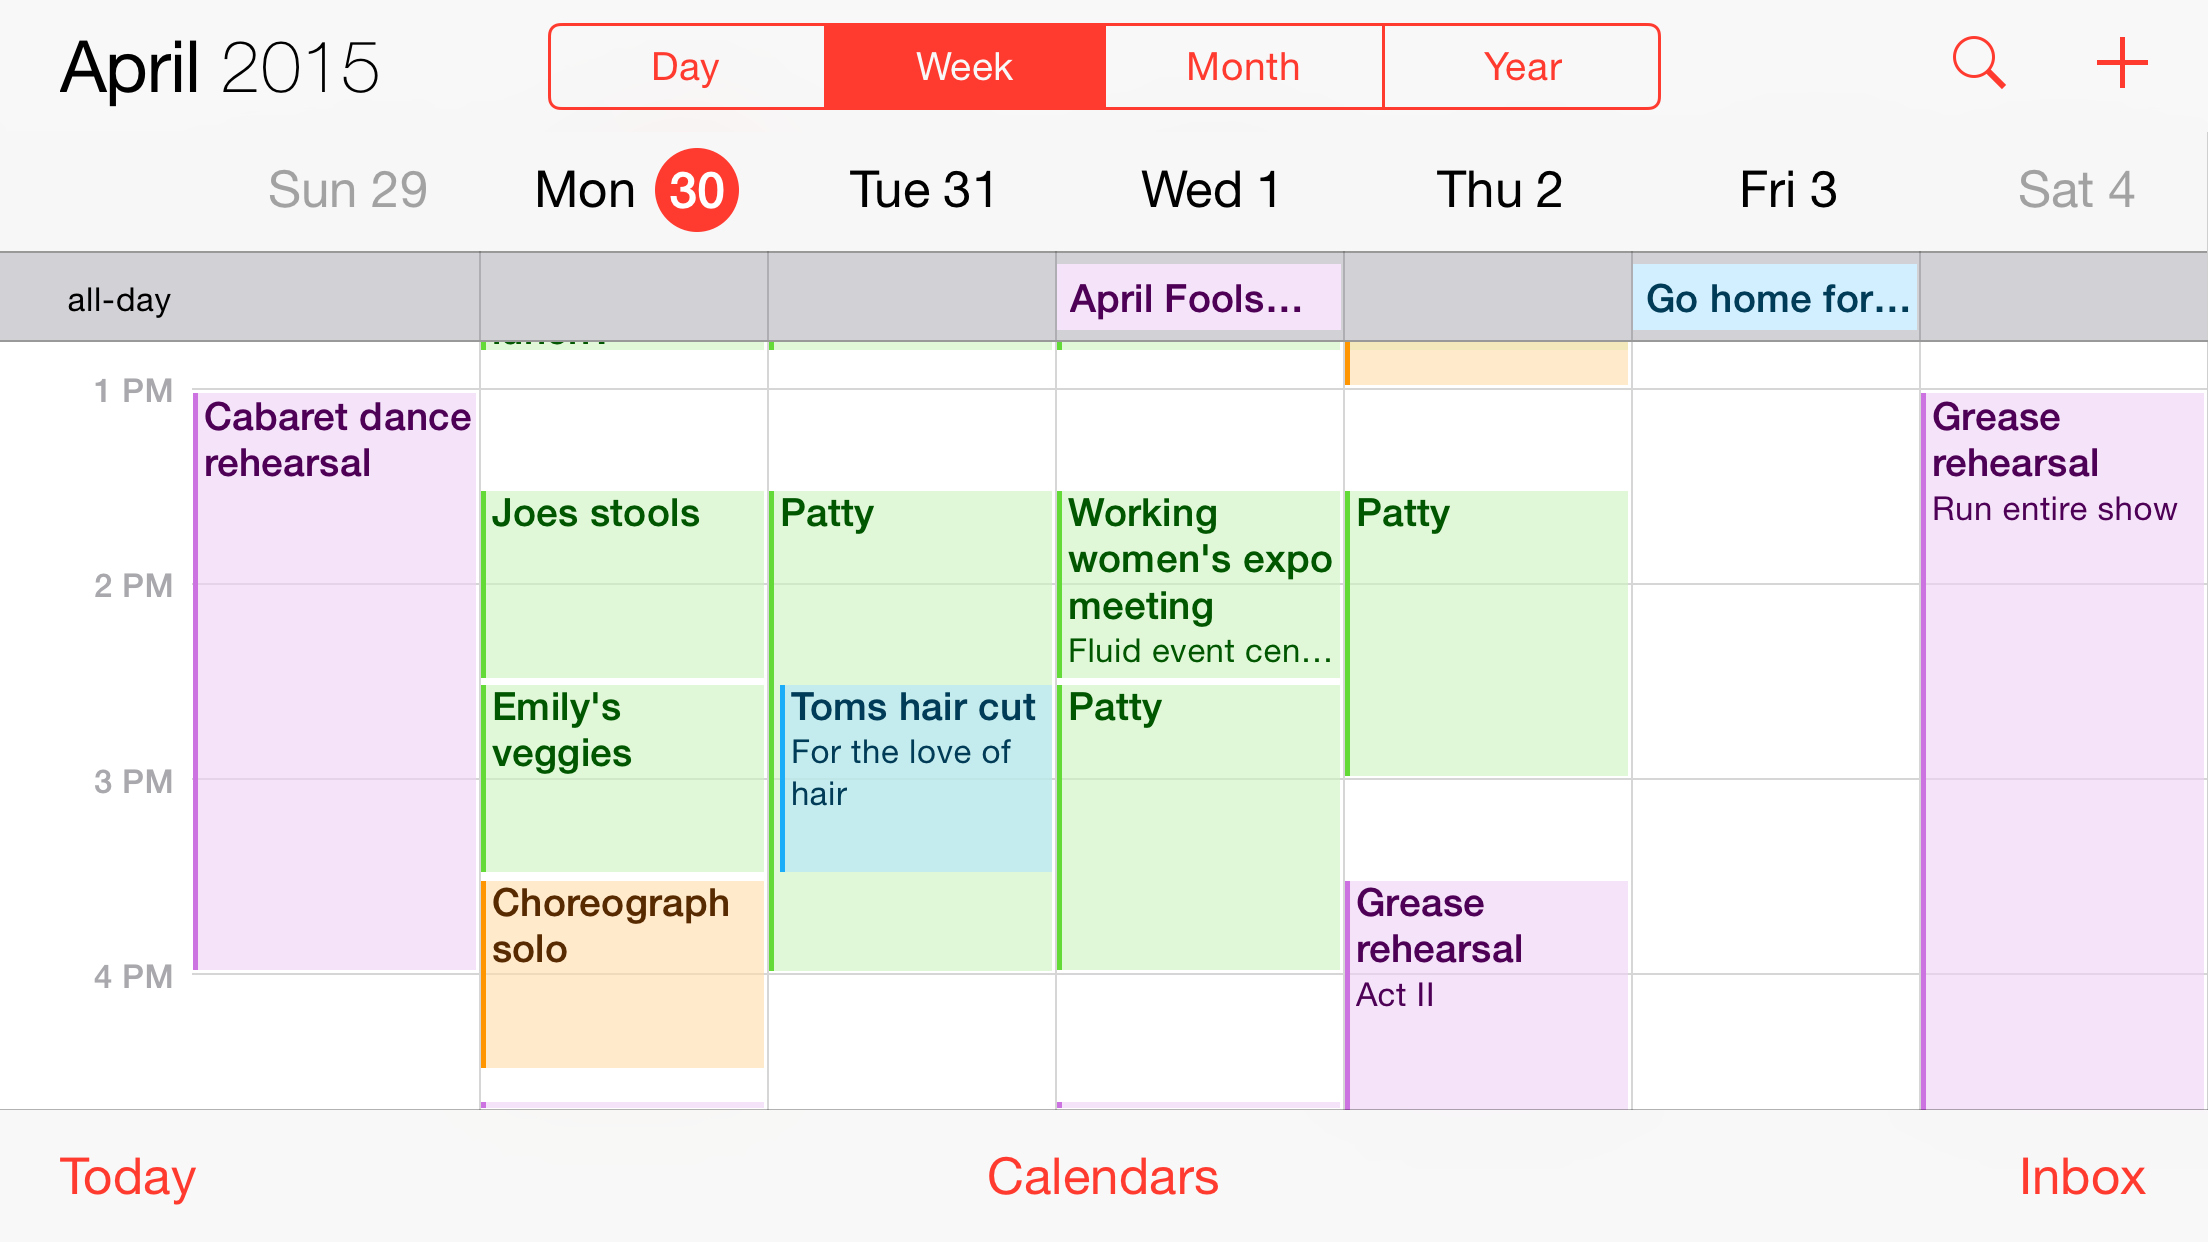 This is an example of my time block for this week. You can see jobs scheduled in, as well as time for choreography and theater rehearsals (one of the things I like to do in my free time). As the week goes on, I will modify and add to my time block to accommodate new tasks that come up.